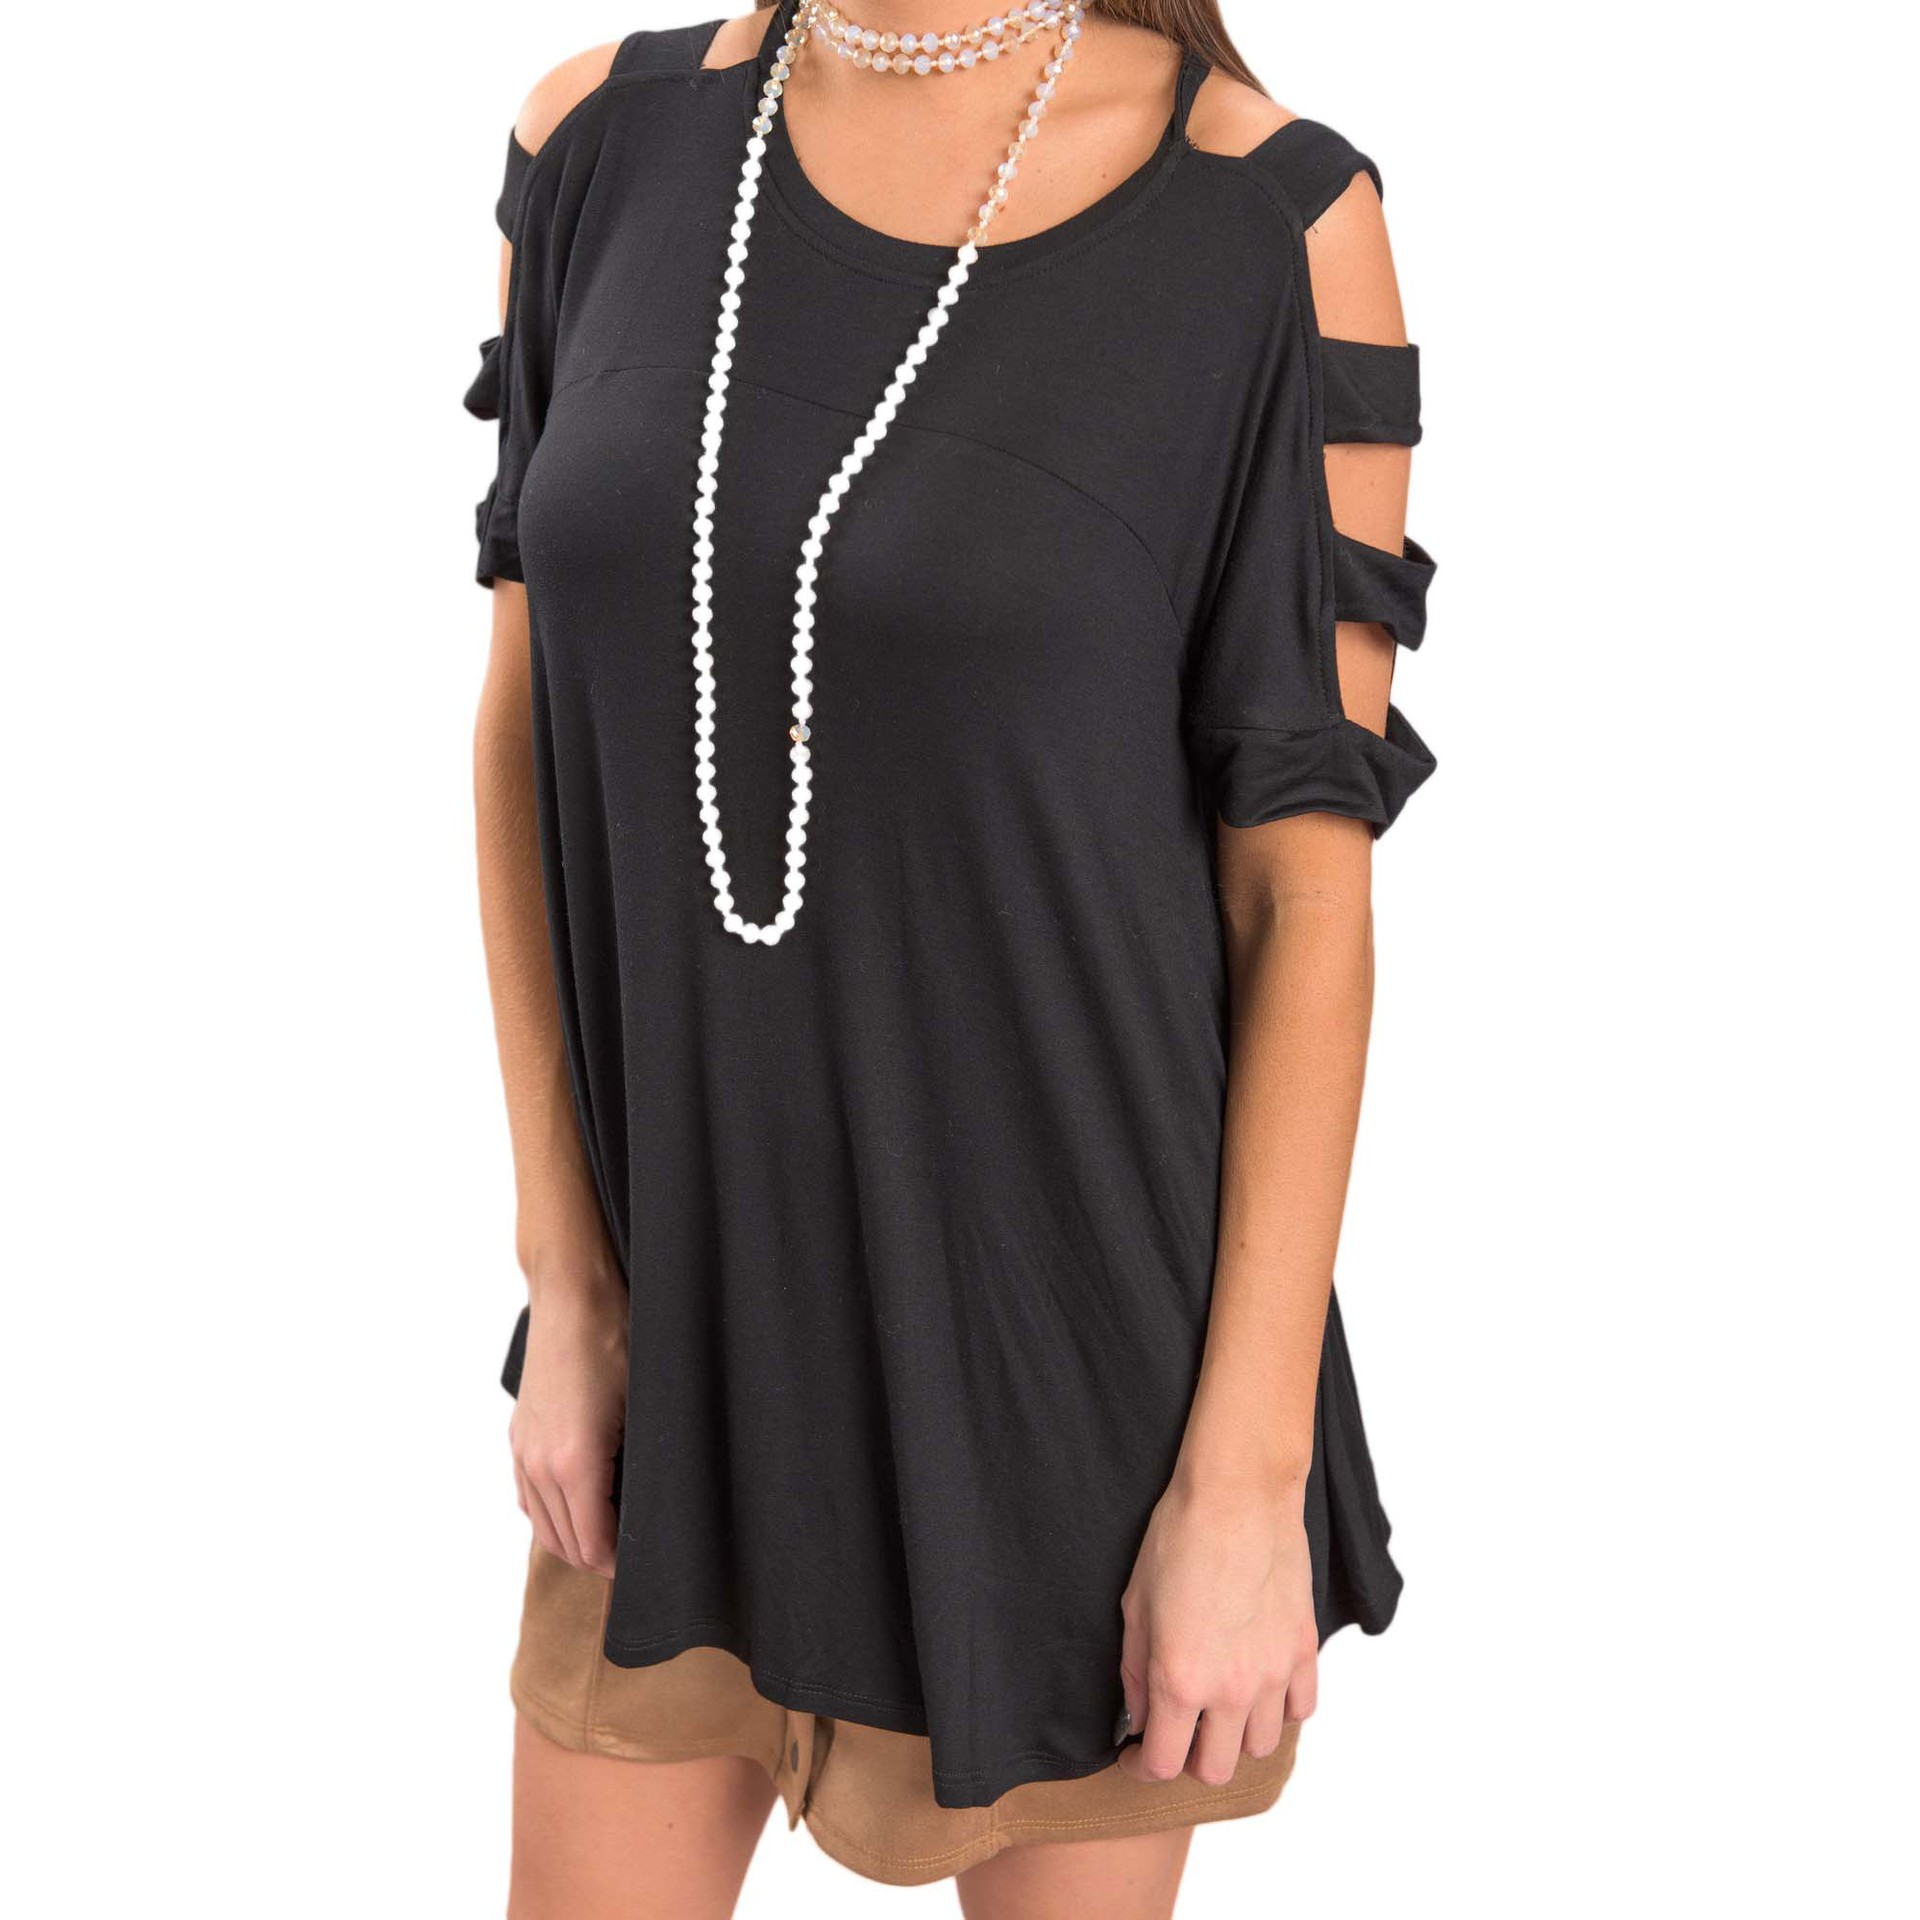 Black batwing sleeve dress